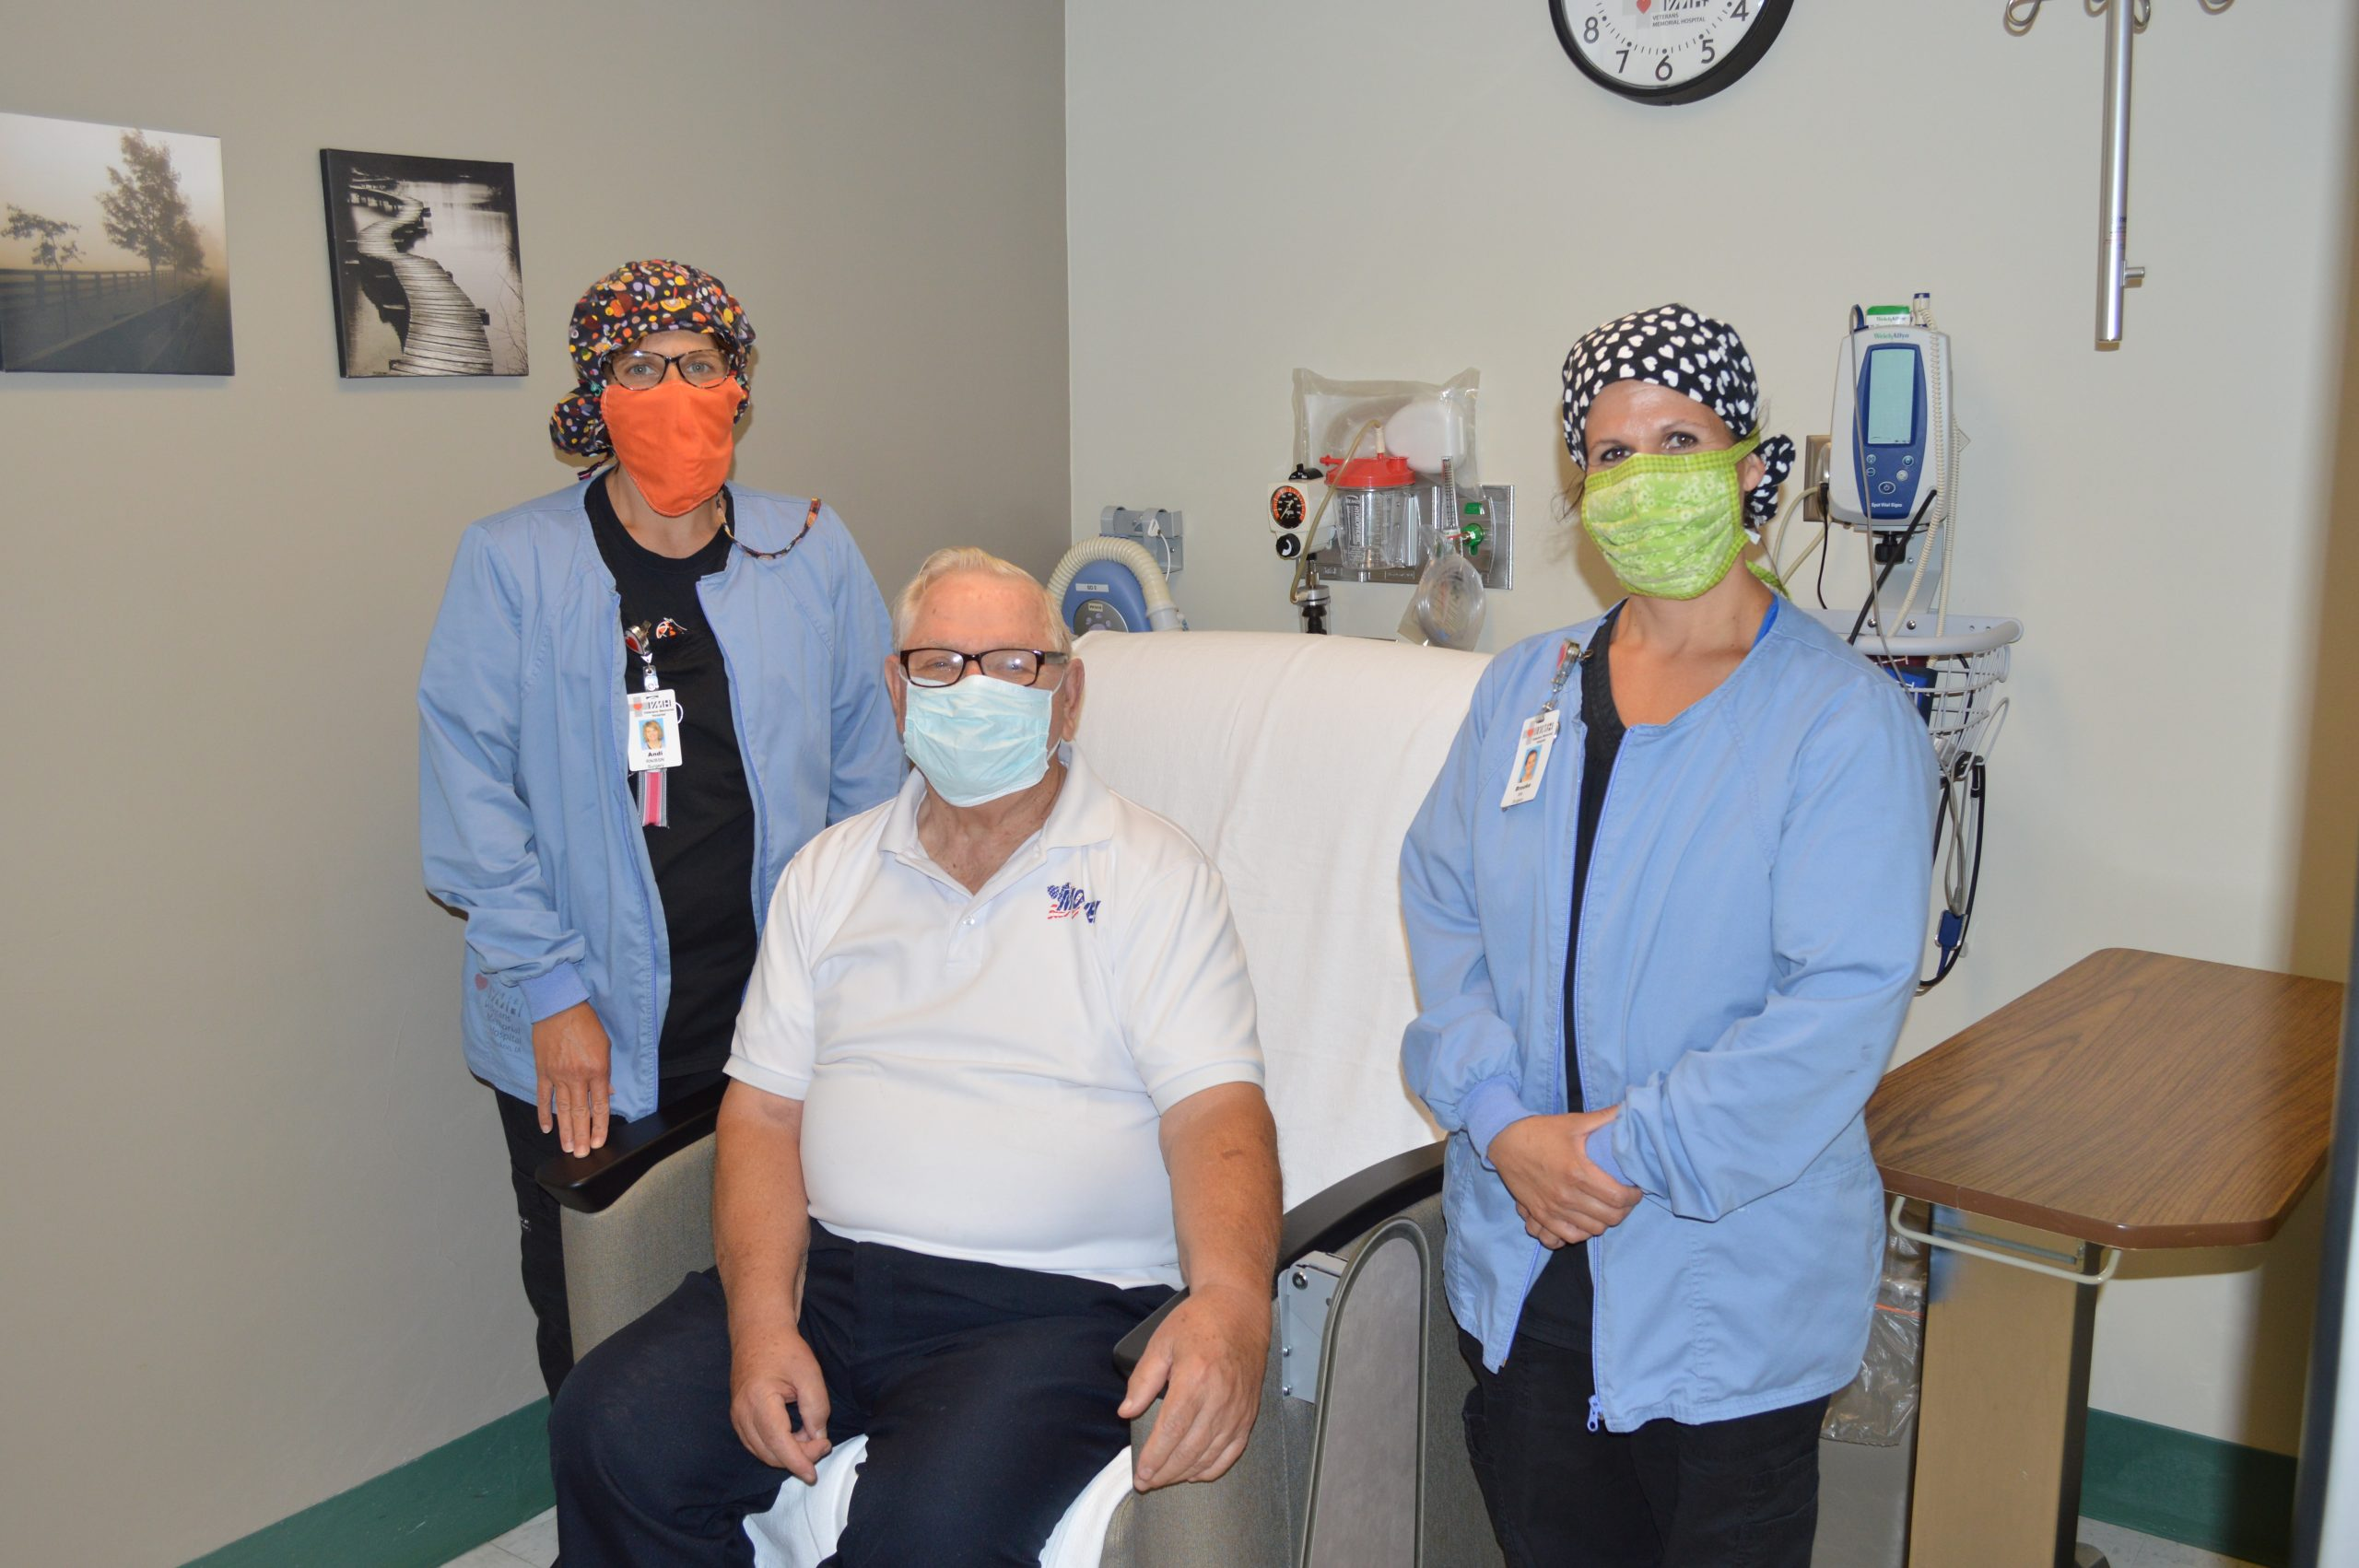 Colonoscopies Again Available for Scheduling as Elective Procedure at VMH